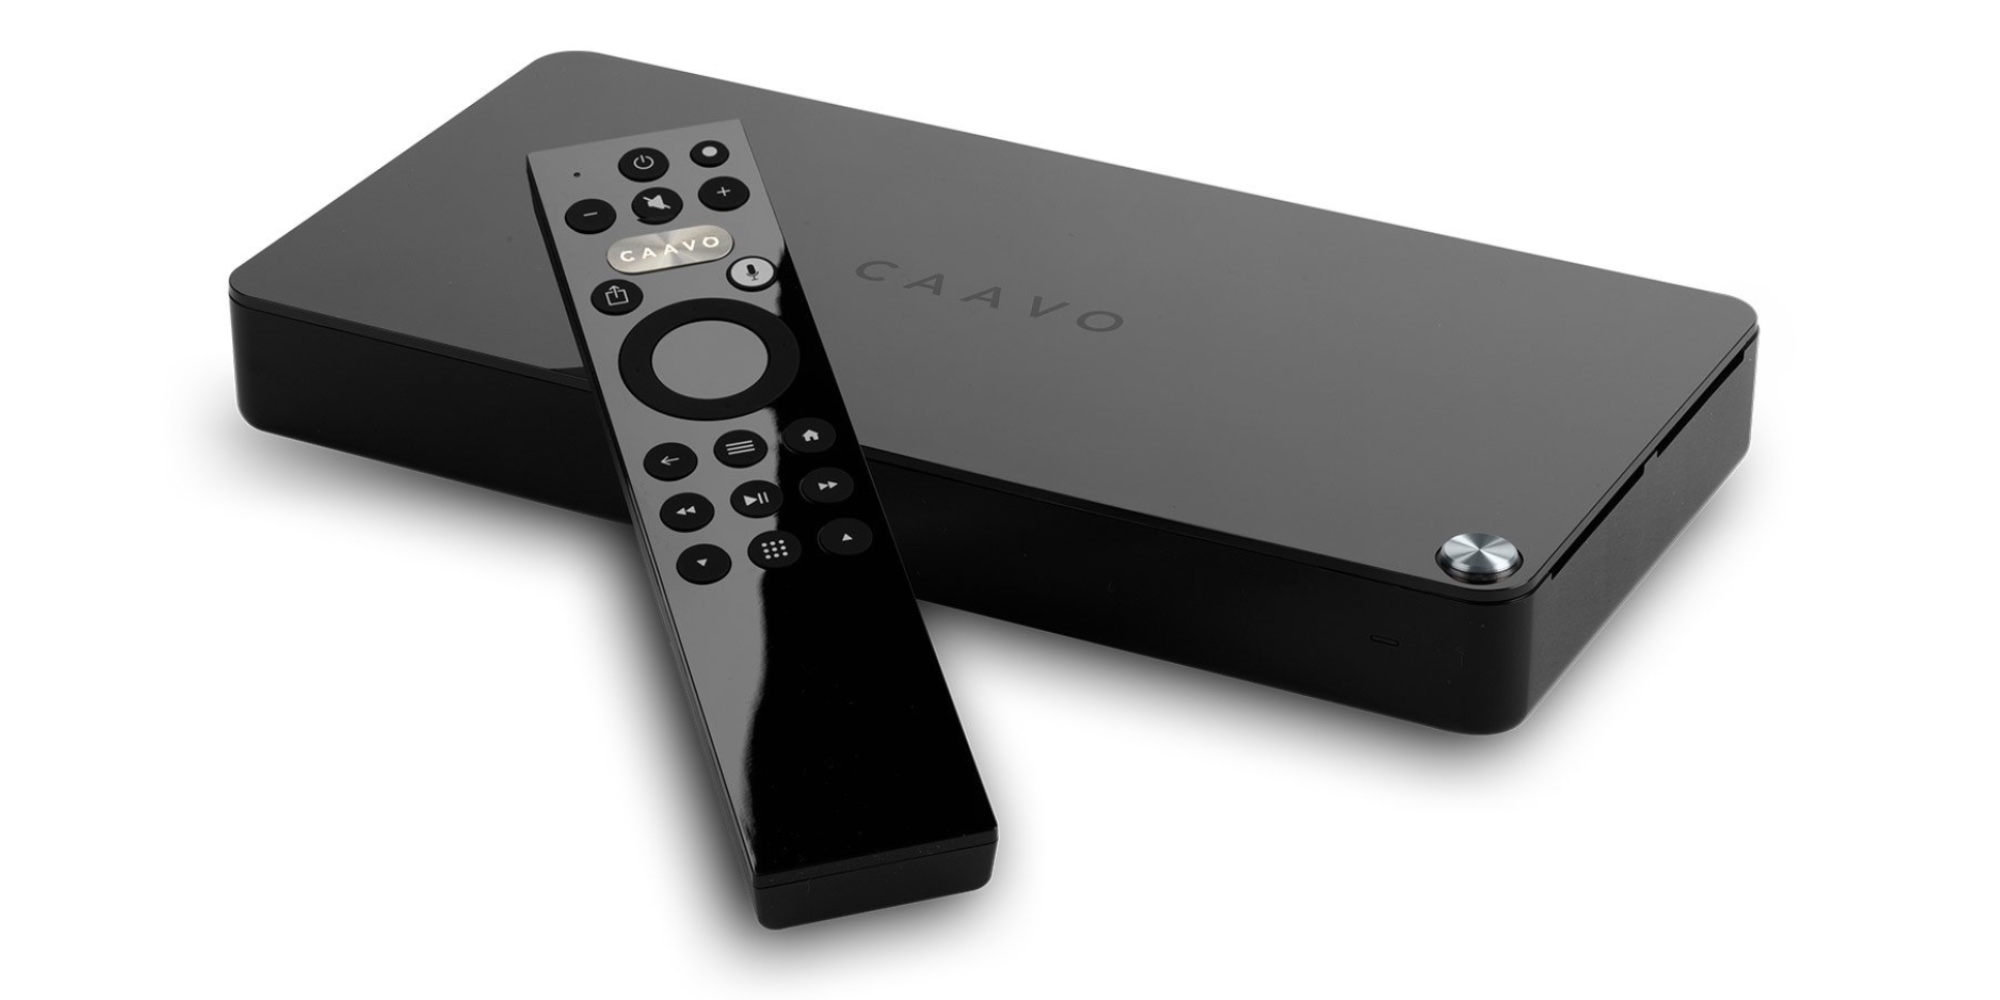 Caavo's Control Center Remote is all you need to manage your home theater at $60 (Reg. $100)